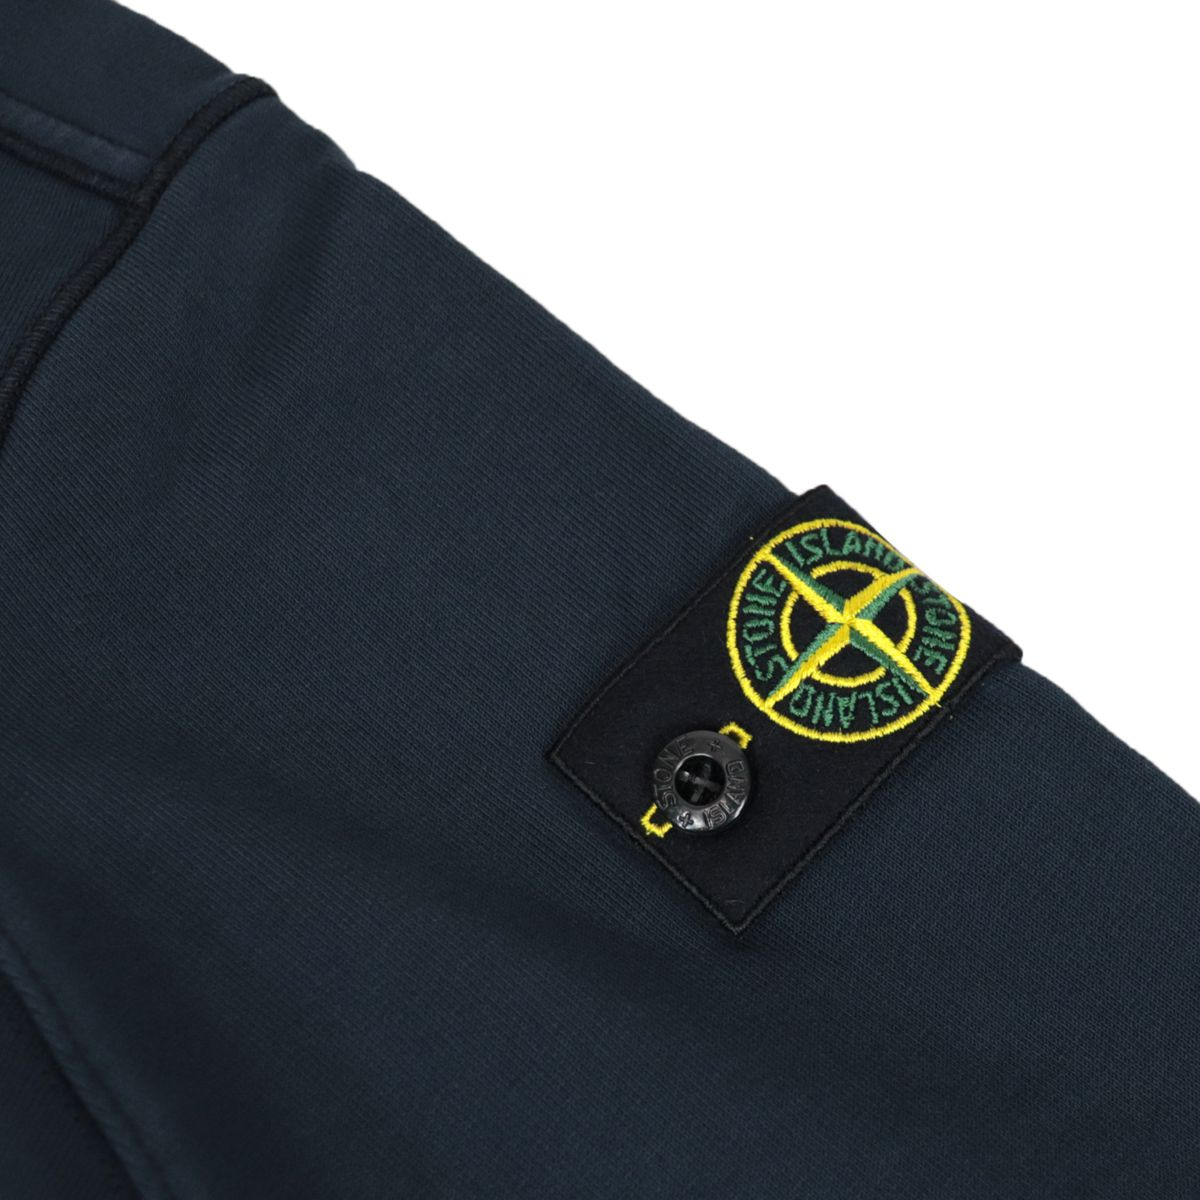 Full zip cotton sweatshirt with hood and logo patch on the sleeve Blue STONE ISLAND JUNIOR